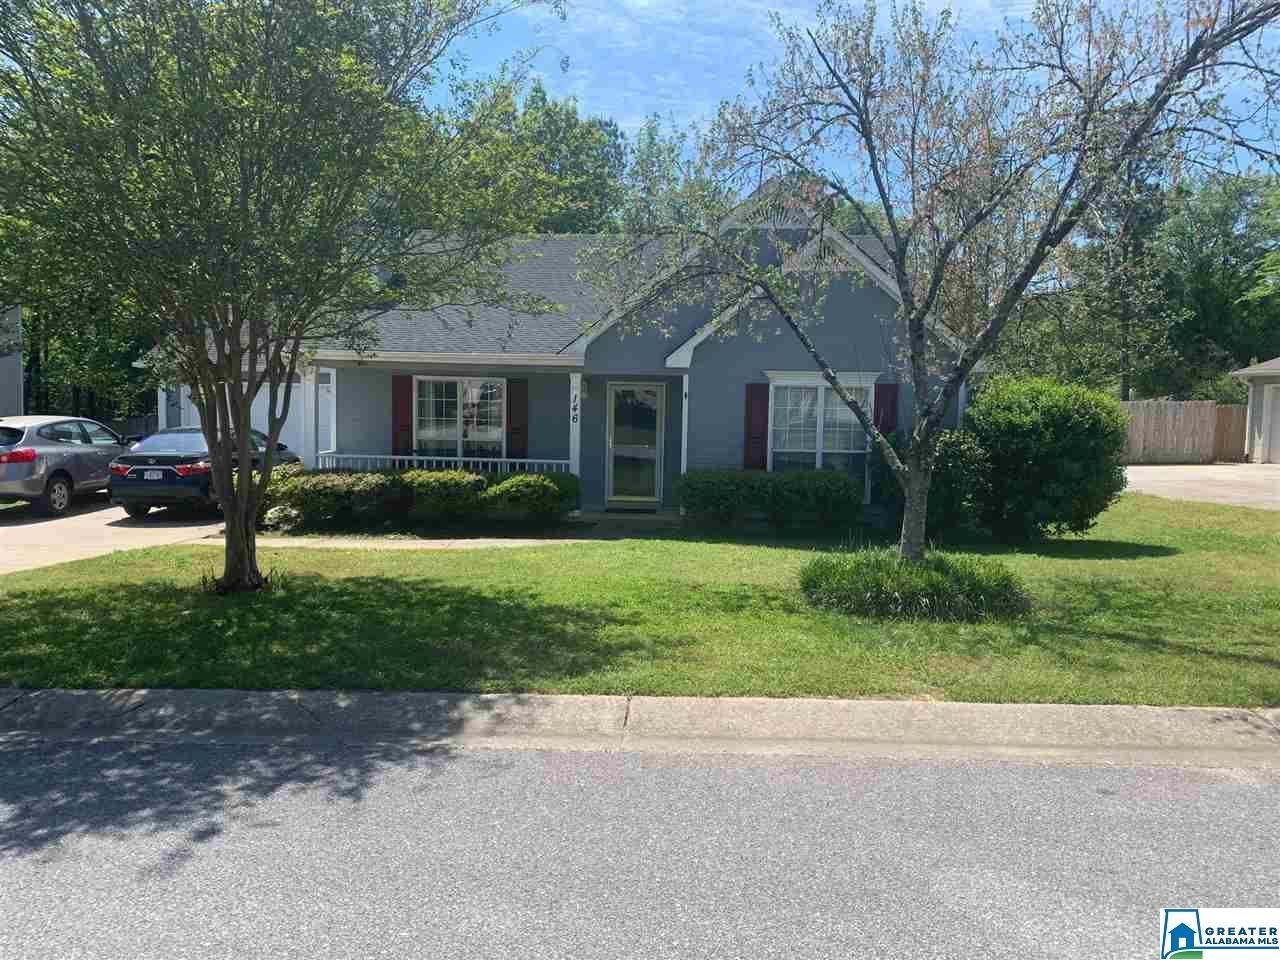 146 PEBBLE LN, Alabaster, AL 35007 - MLS#: 879740